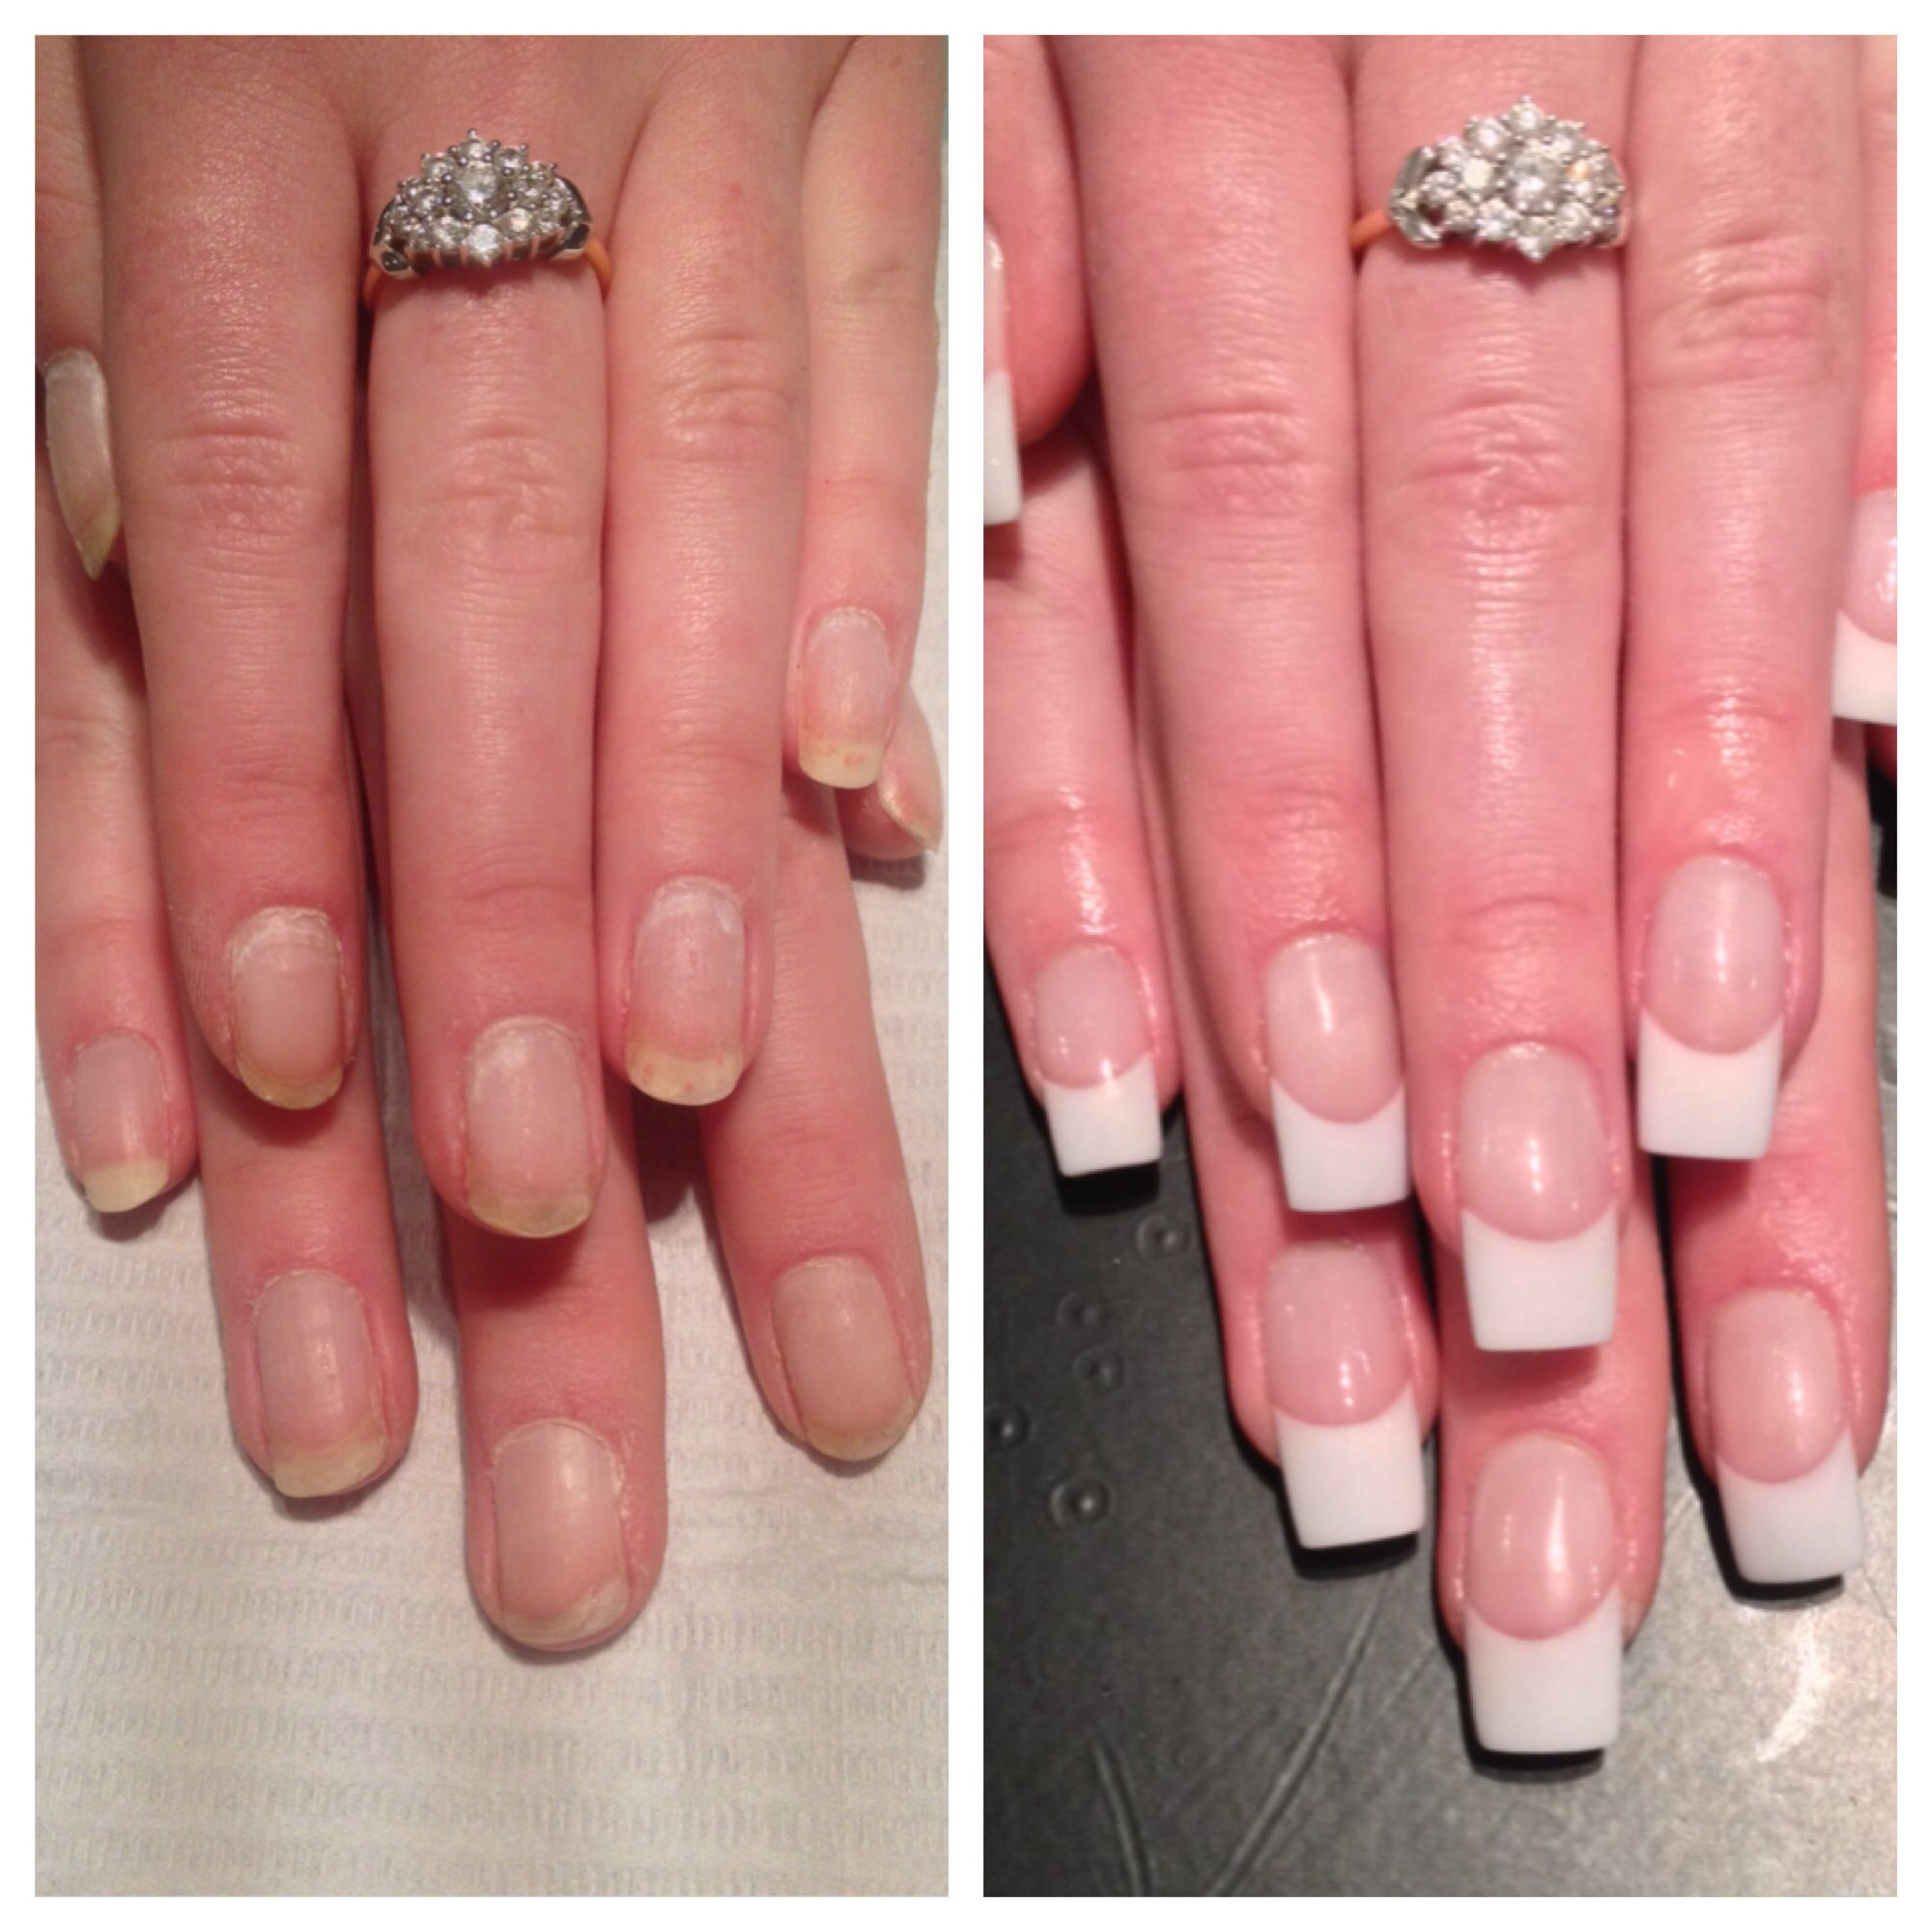 Acrylic nails - pink and white powder. No white tips ;) | Hair and ...